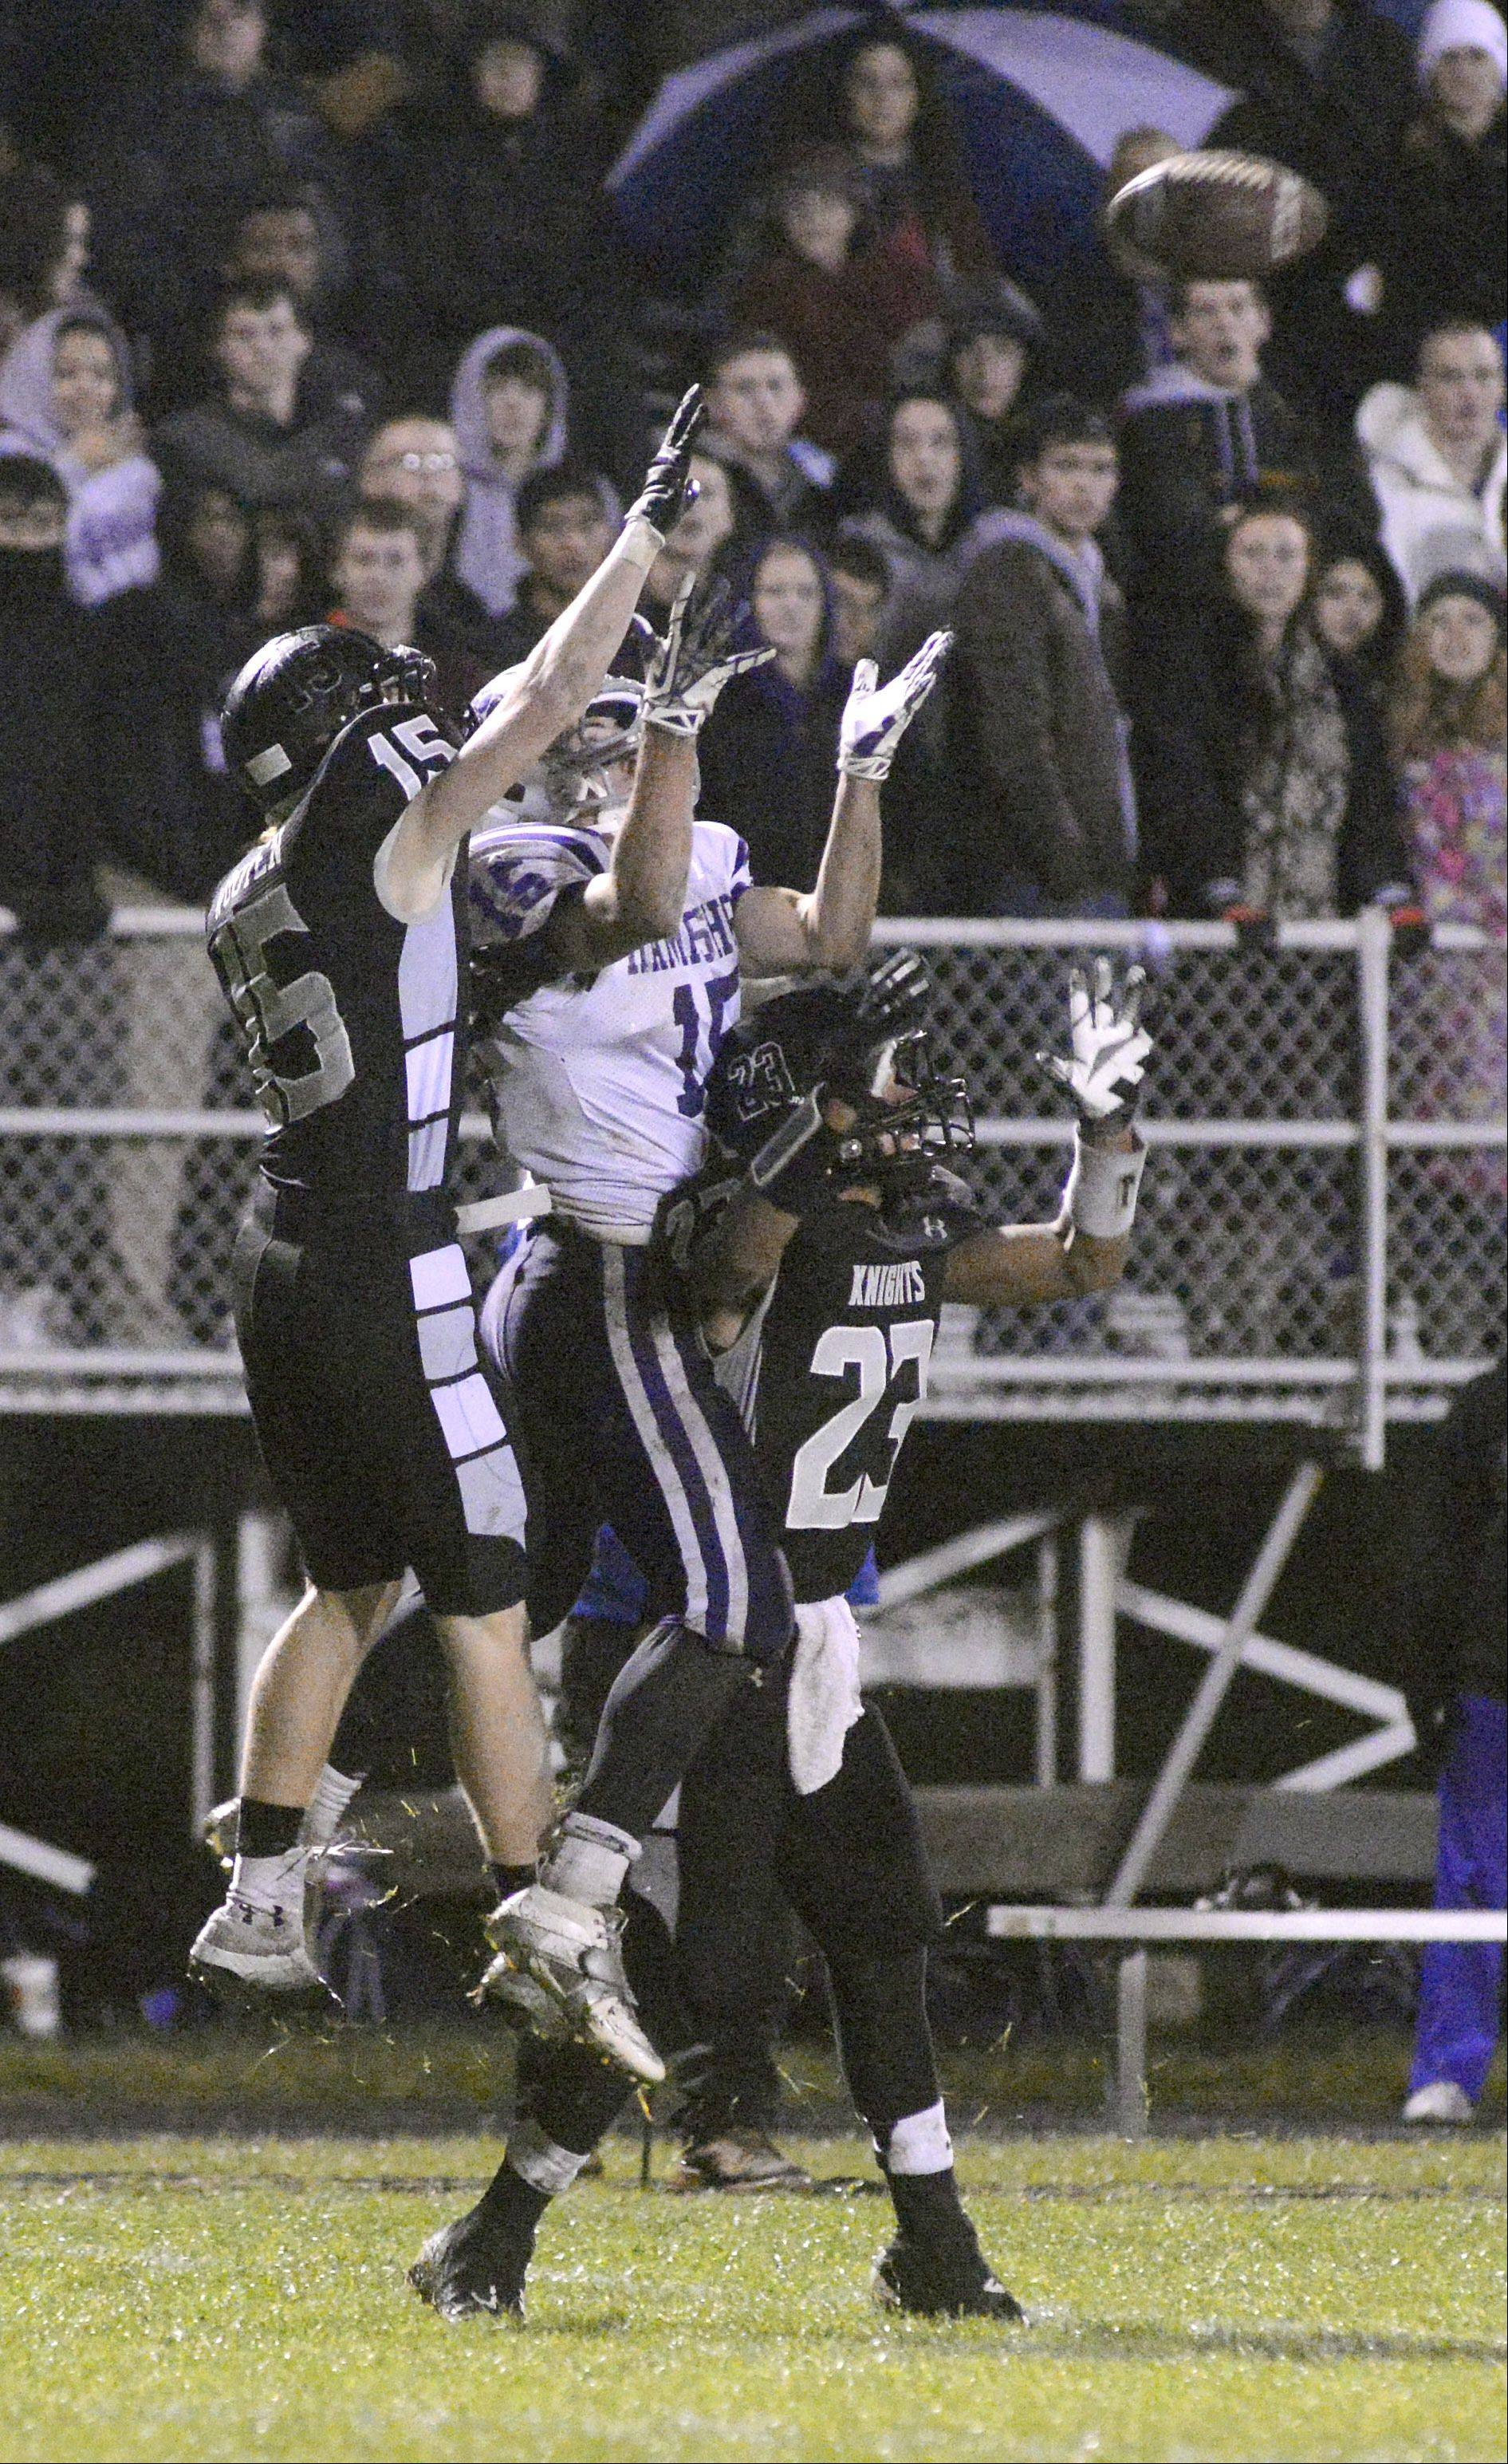 Kaneland's Alex Aurelio and Isaac Swithers leap in tandem for the ball with Hampshire's Tim Jansen in the second quarter. The ball fell for an incomplete pass.